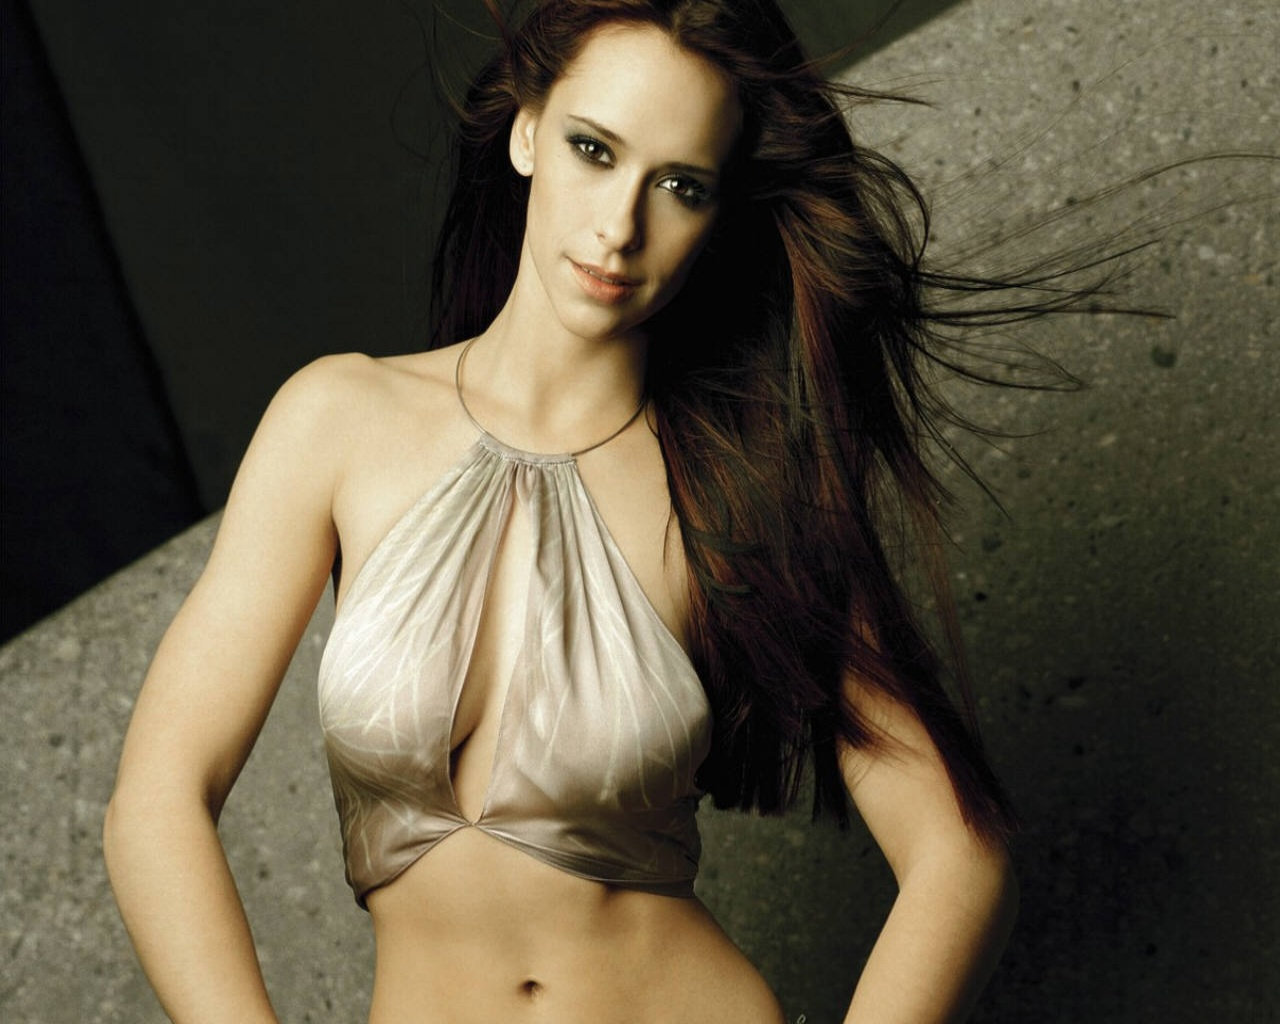 http://1.bp.blogspot.com/-ZW9z5t3sHlk/TXuHMoEpM3I/AAAAAAAAAws/w1wbtLJleLg/s1600/actress_jennifer_love_hewitt_hot_wallpaper.jpg